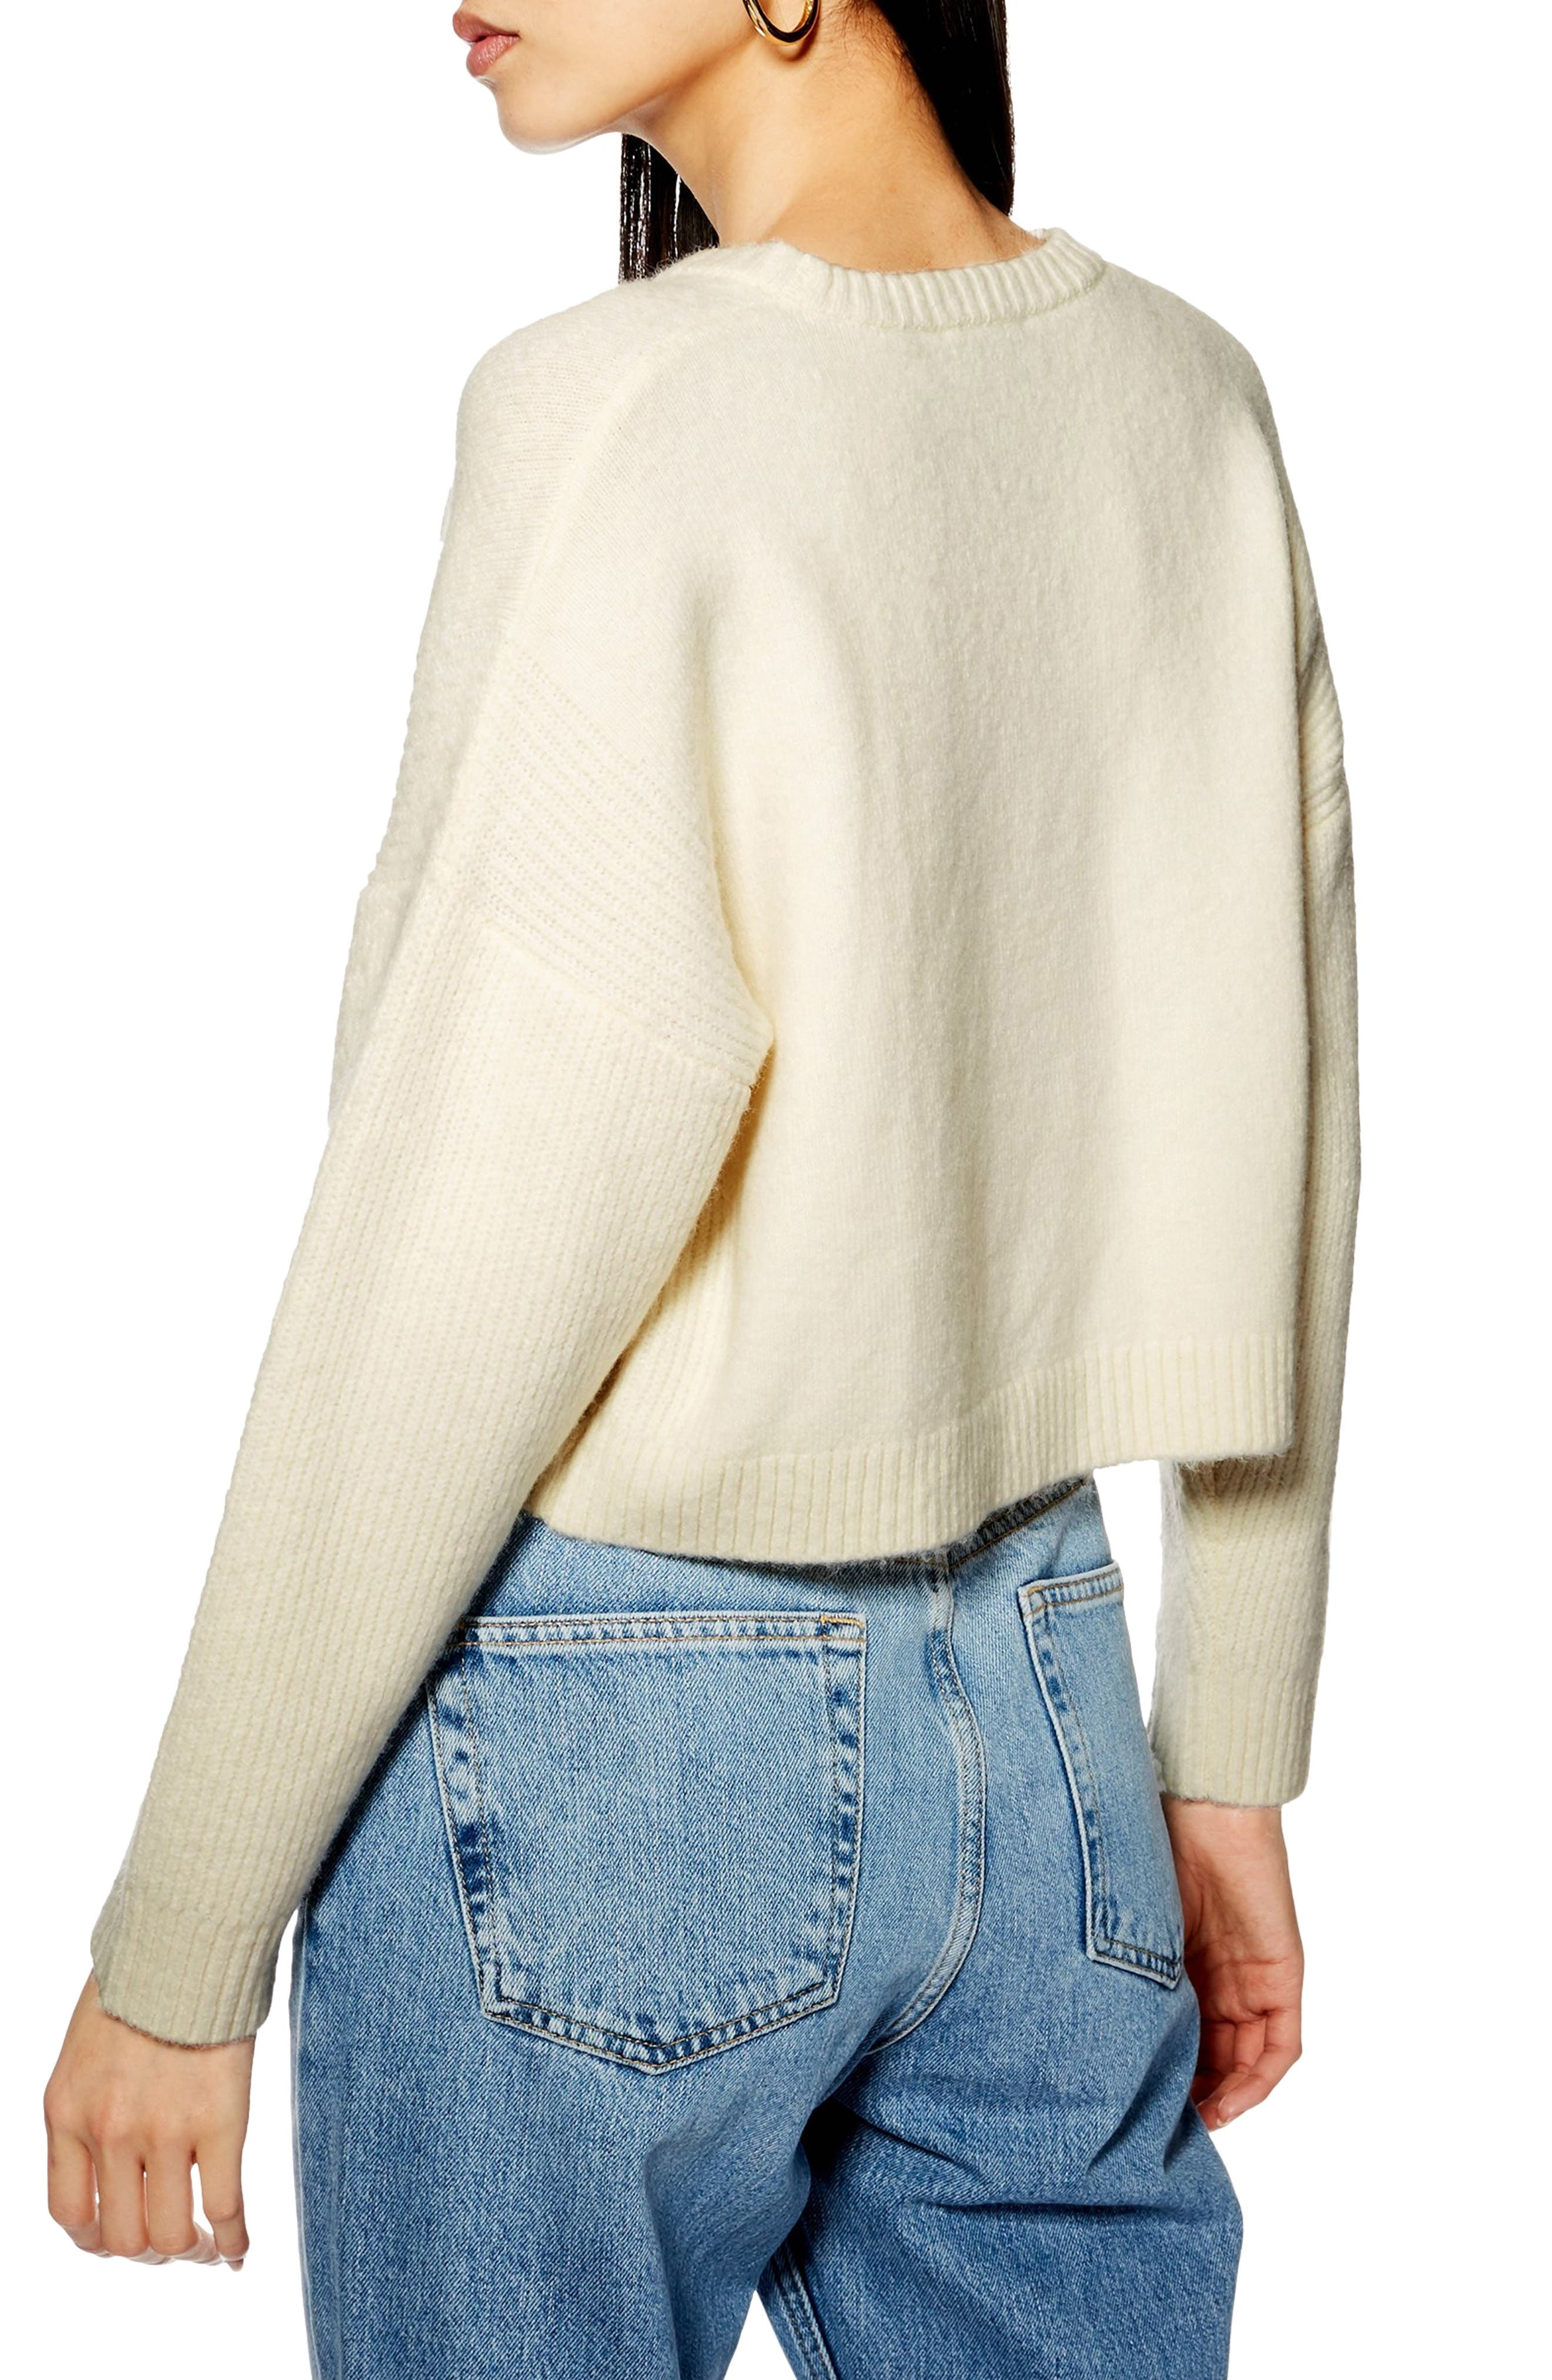 TOPSHOP, Stretch Chevron Ribbed Sweater, Alternate thumbnail 2, color, 900